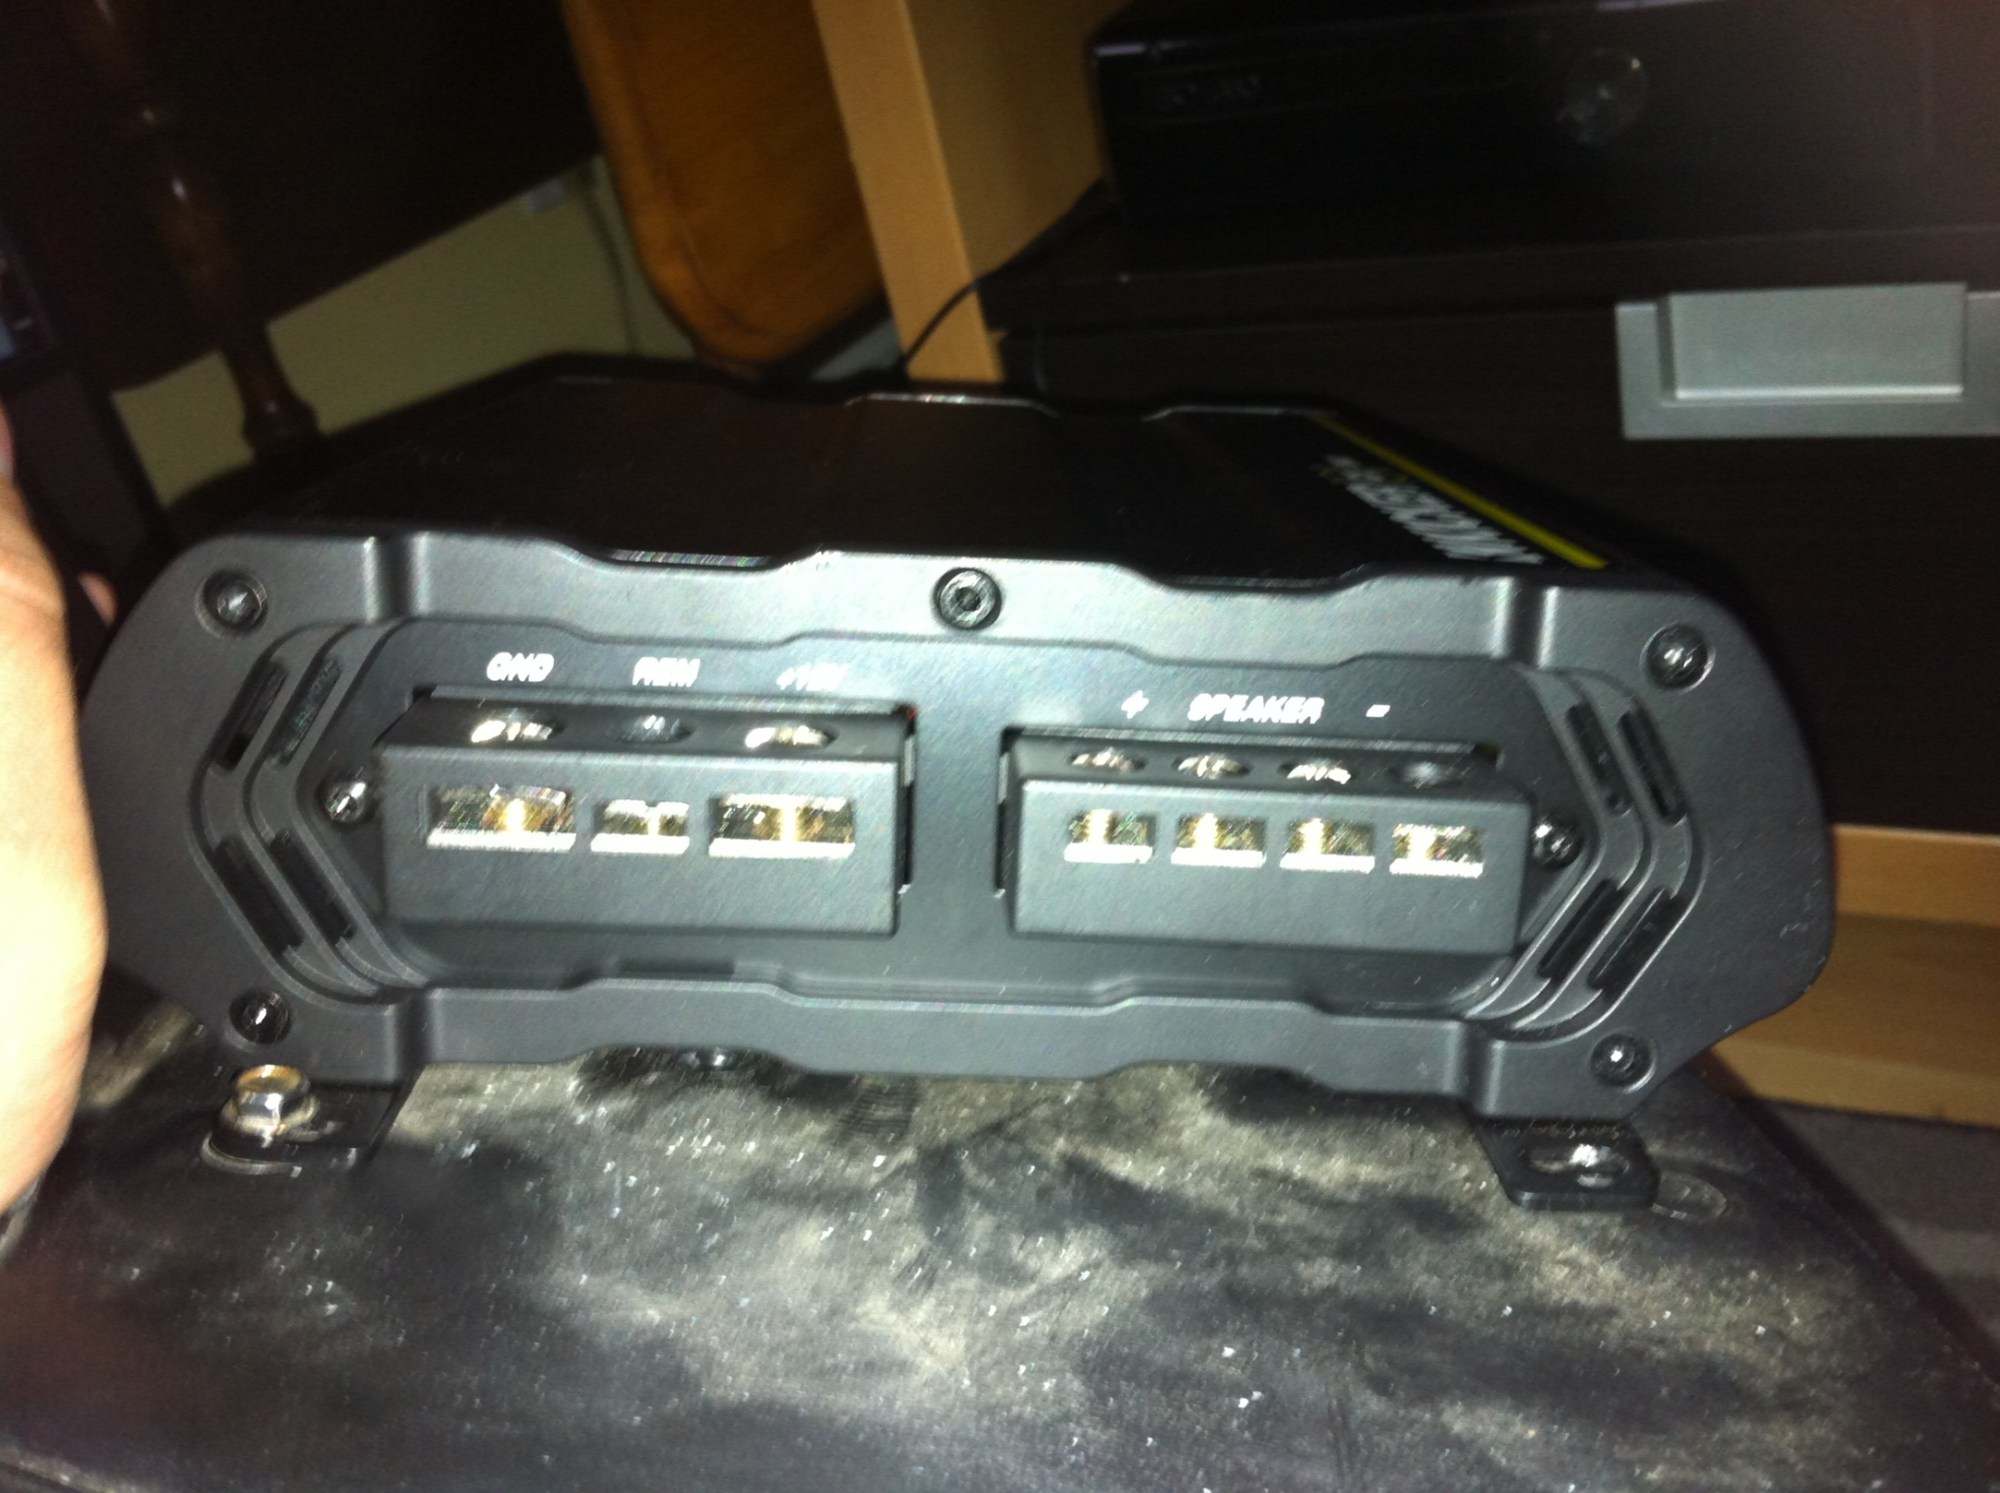 hight resolution of polk audio subwoofer wiring jl audio subwoofer wiring velodyne subwoofer wiring rockford fosgate